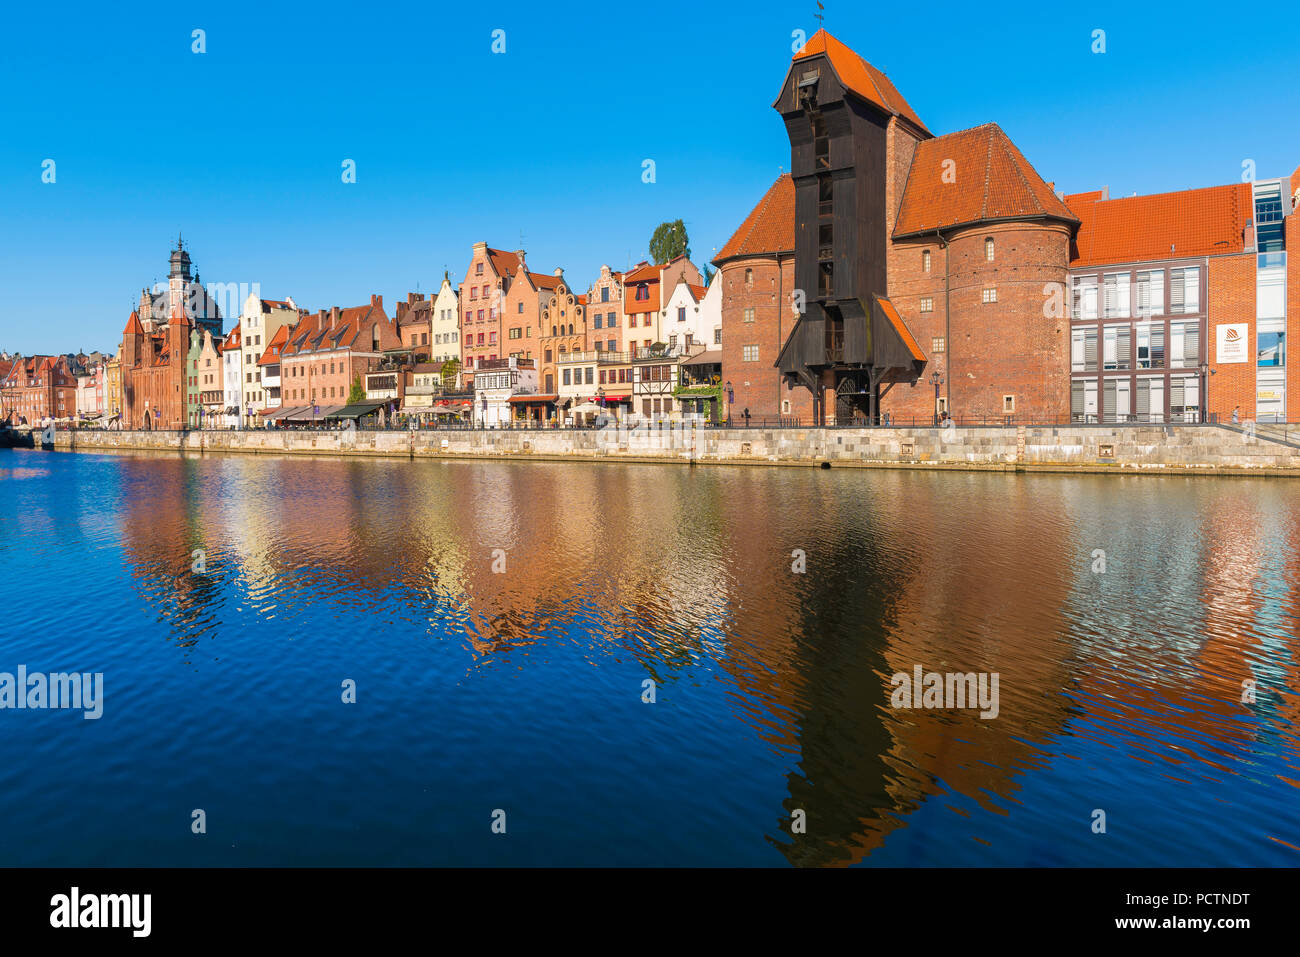 Gdansk crane Zuraw, view of the Zuraw - the largest medieval crane in Europe sited alongside the Motlawa River in the Old Town area of Gdansk, Poland. Stock Photo